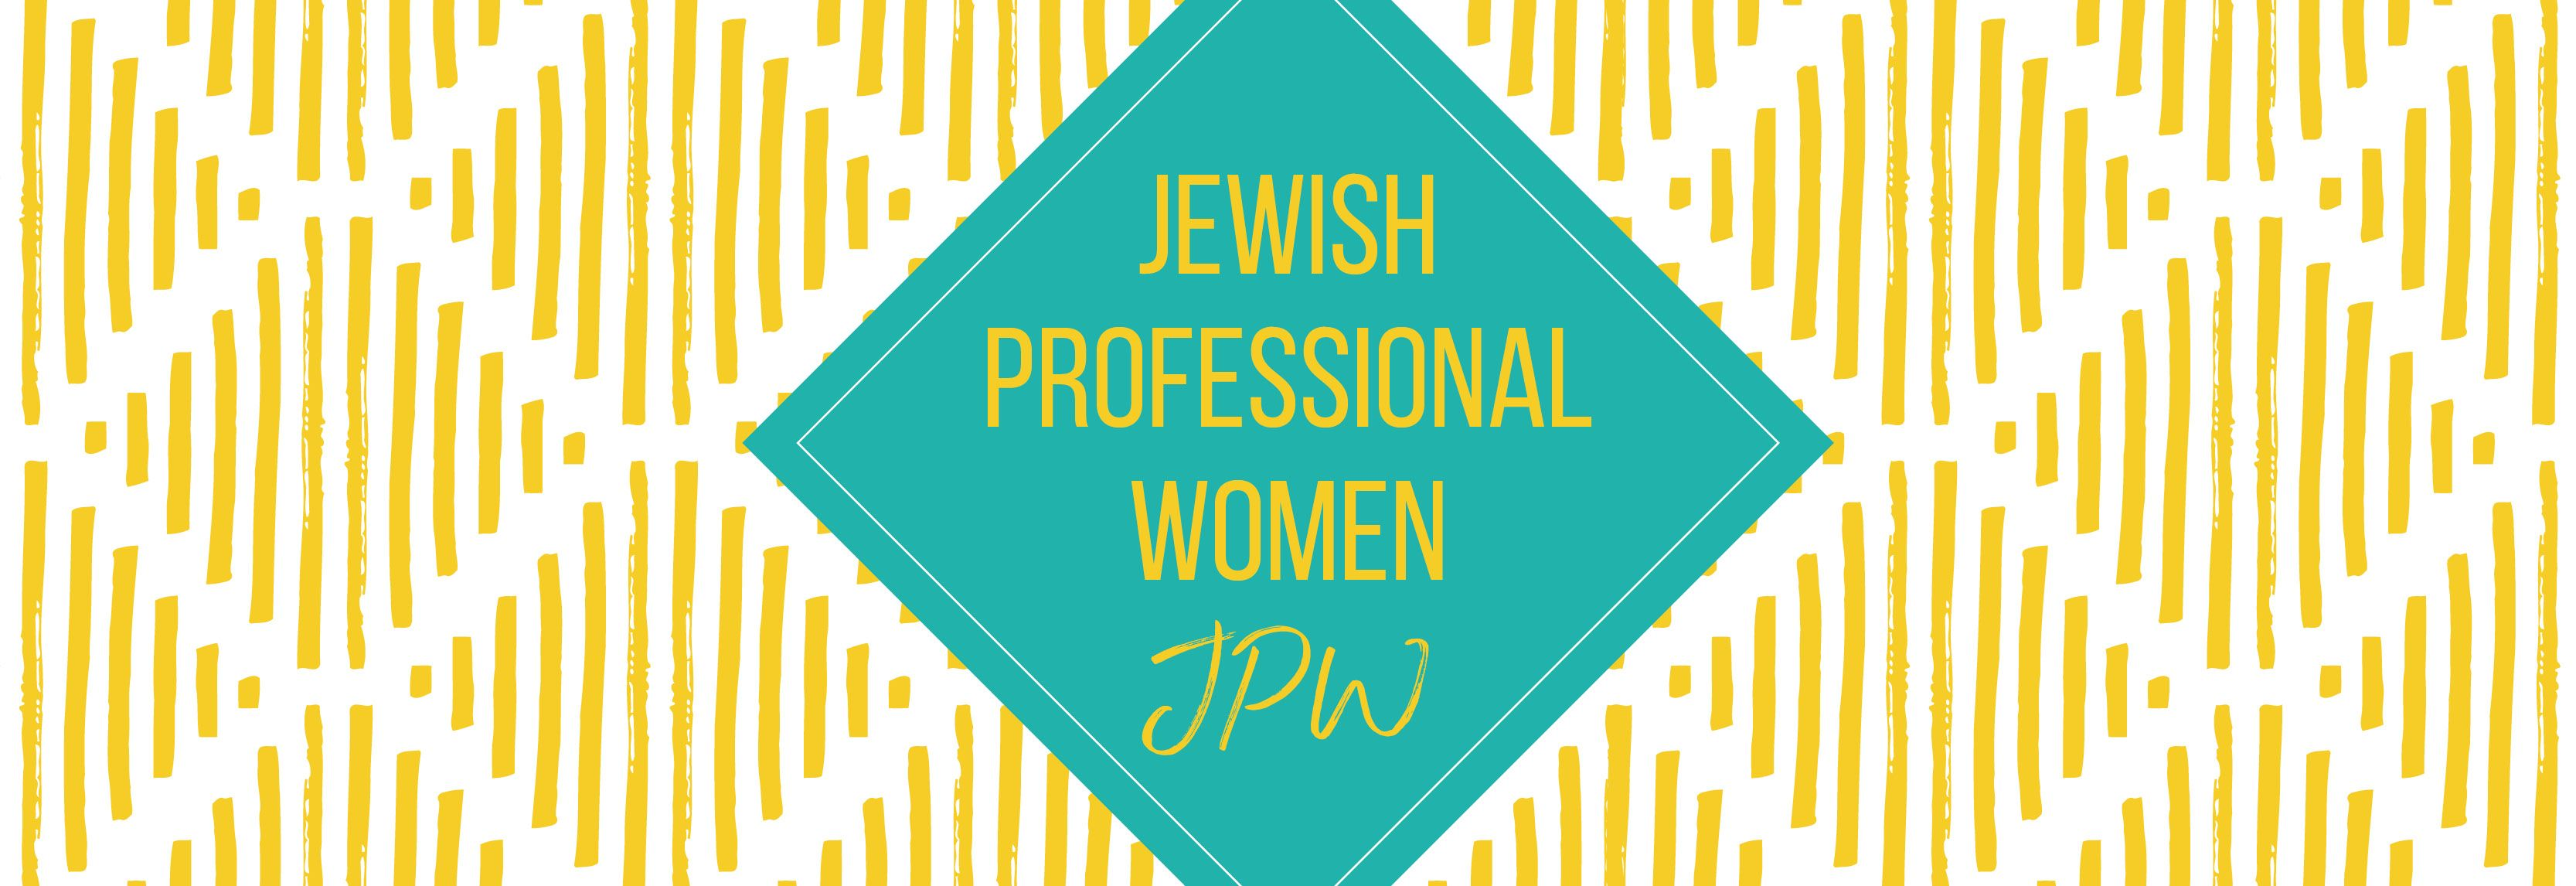 Jewish Professional Women